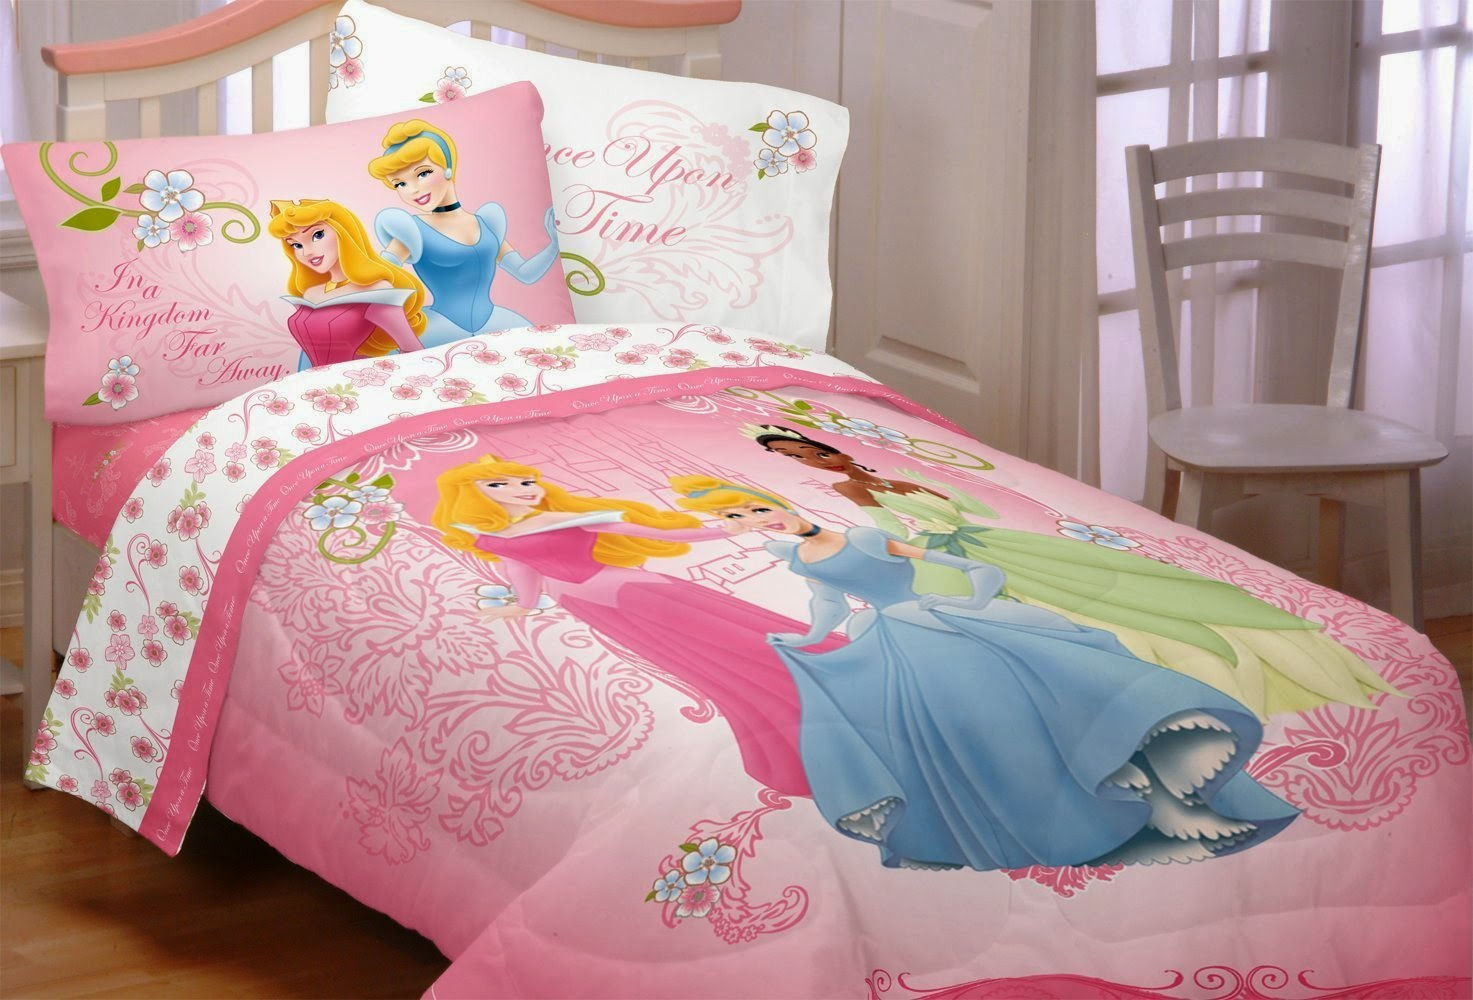 How To Decorate A Disney S Princess Aurora Themed Bedroom Sleeping Beauty